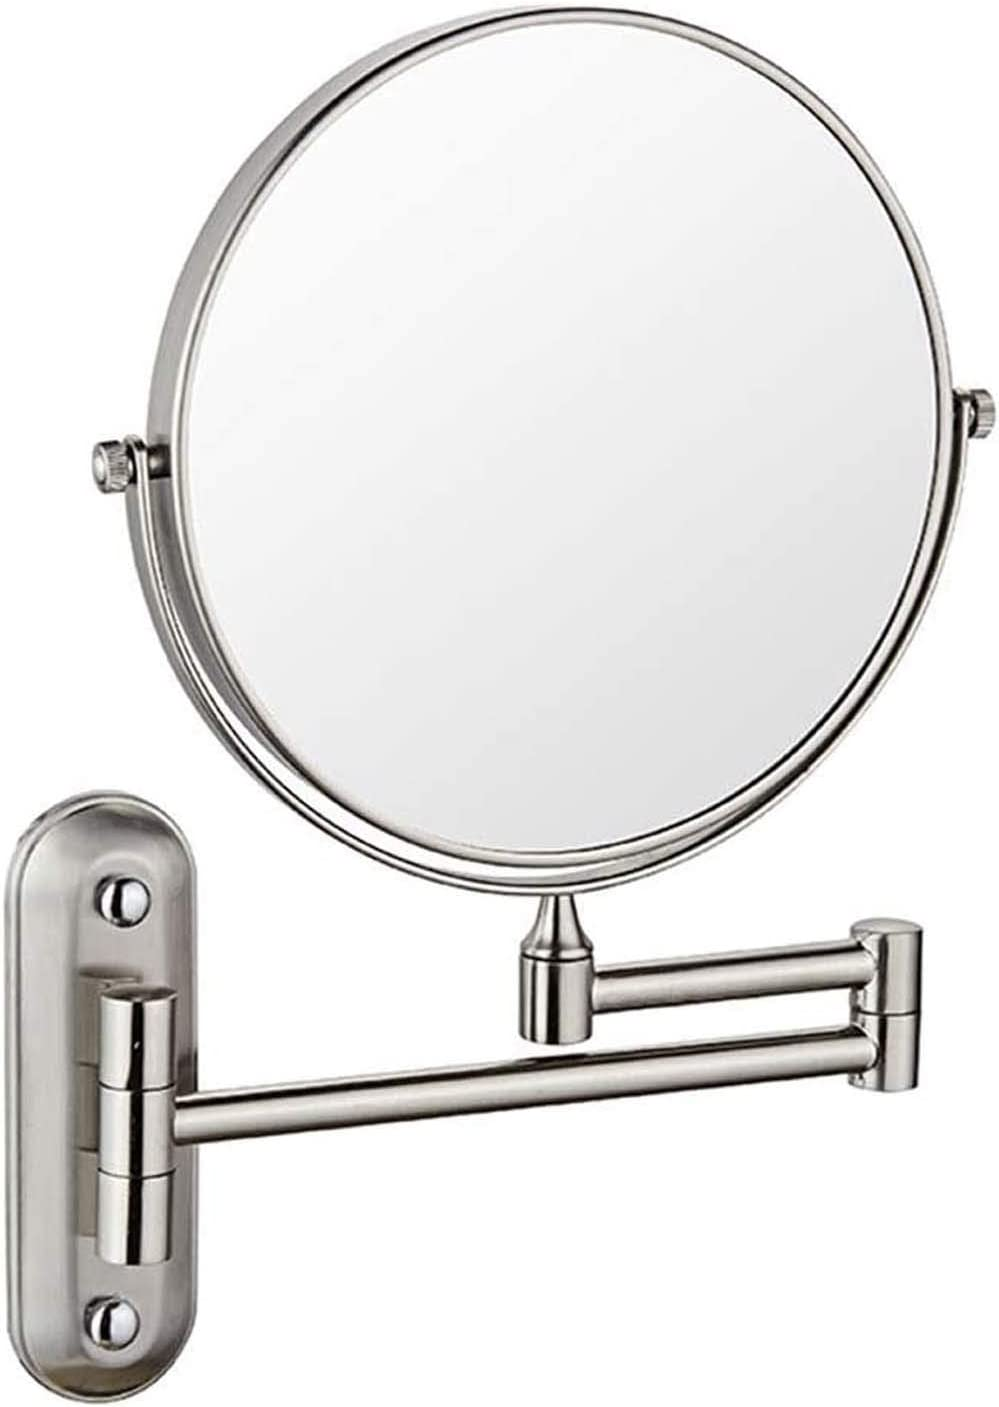 Manufacturer direct delivery Indianapolis Mall ZHCHL Makeup Mirror Wall Mounted Make Bat 8inch Round Up